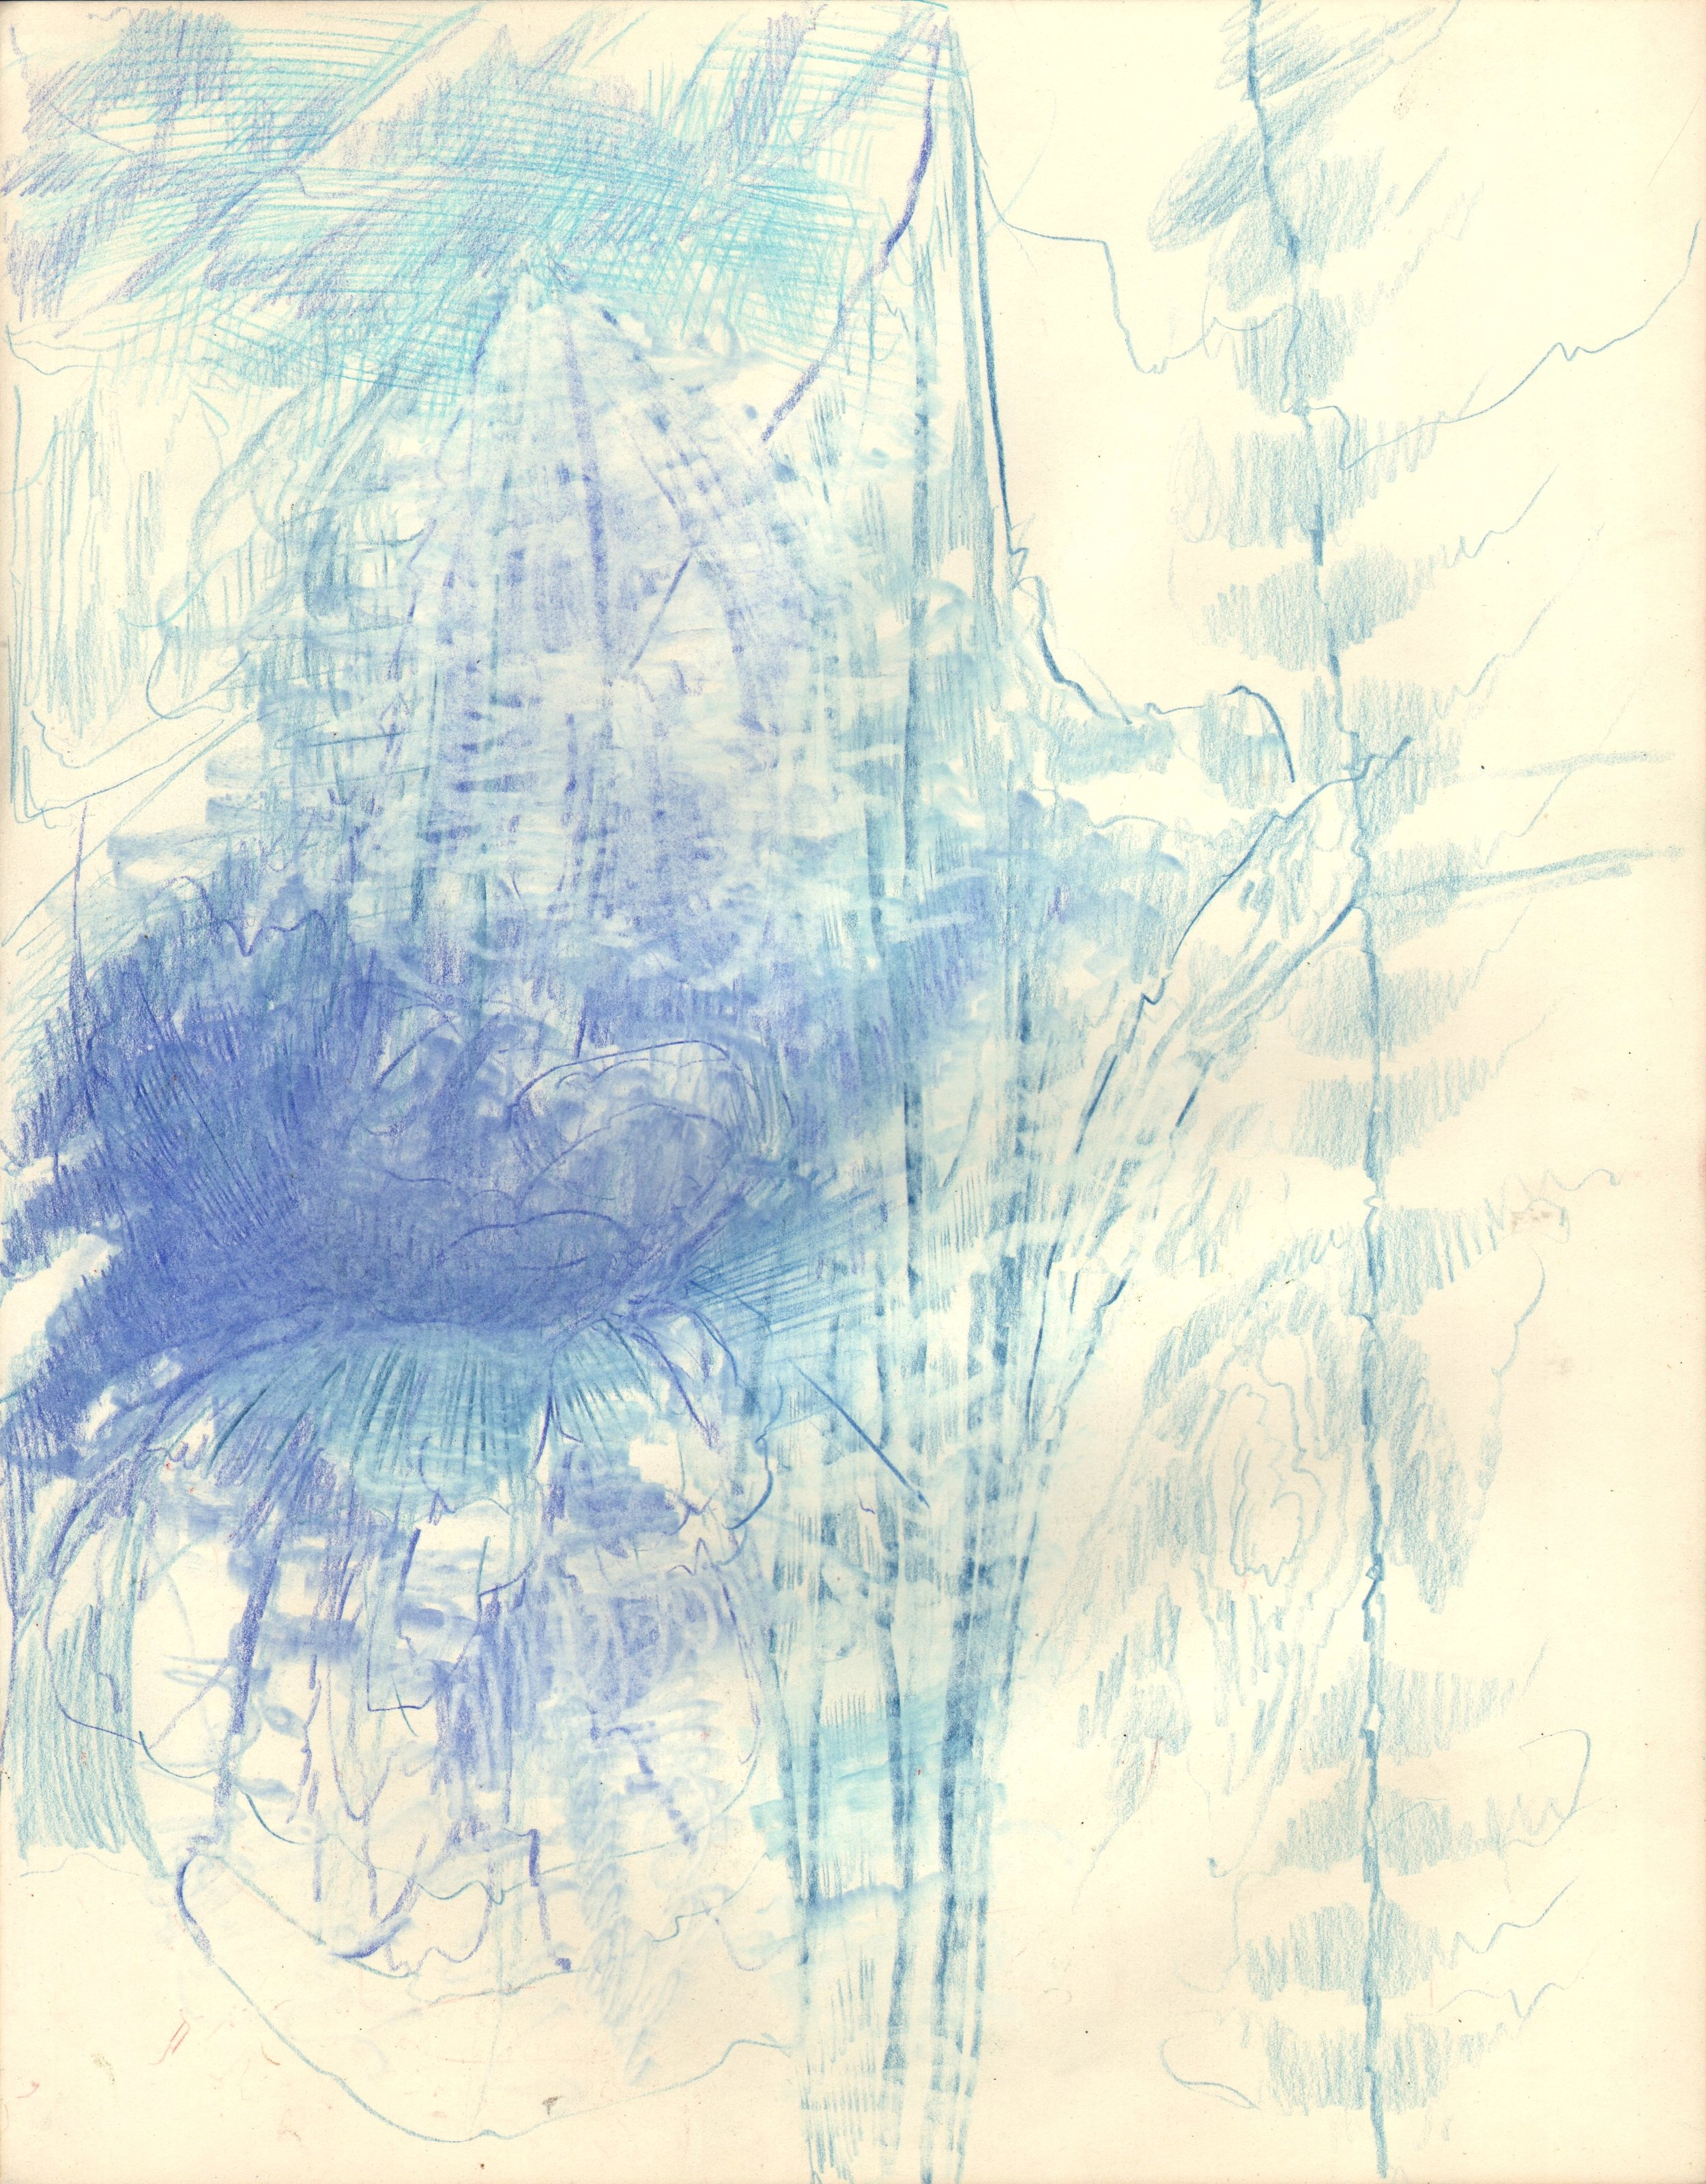 Blue Light Falling, 2015, 14 x 11 inches, pencil on paper